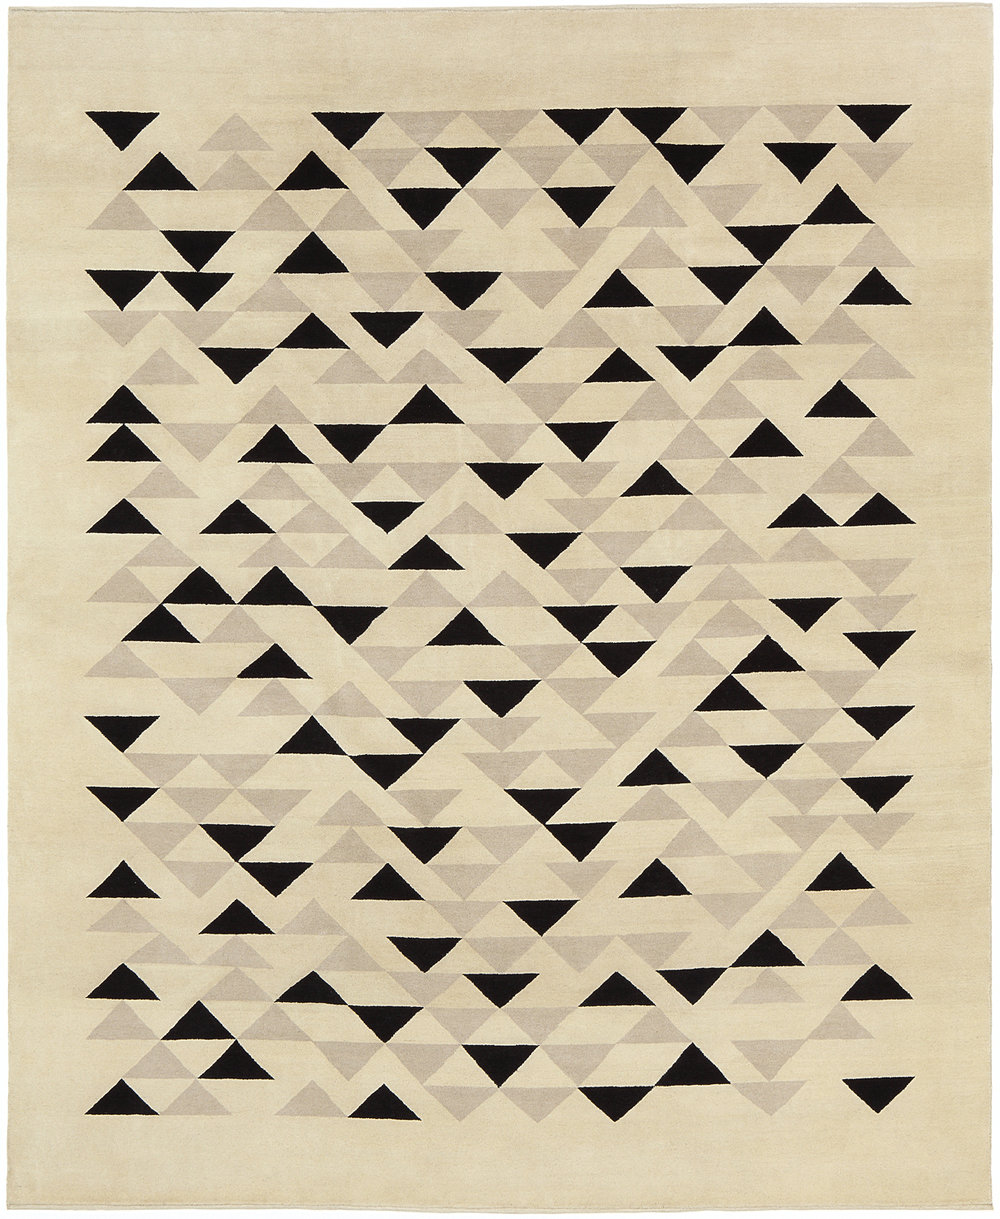 Rug from Anni Albers